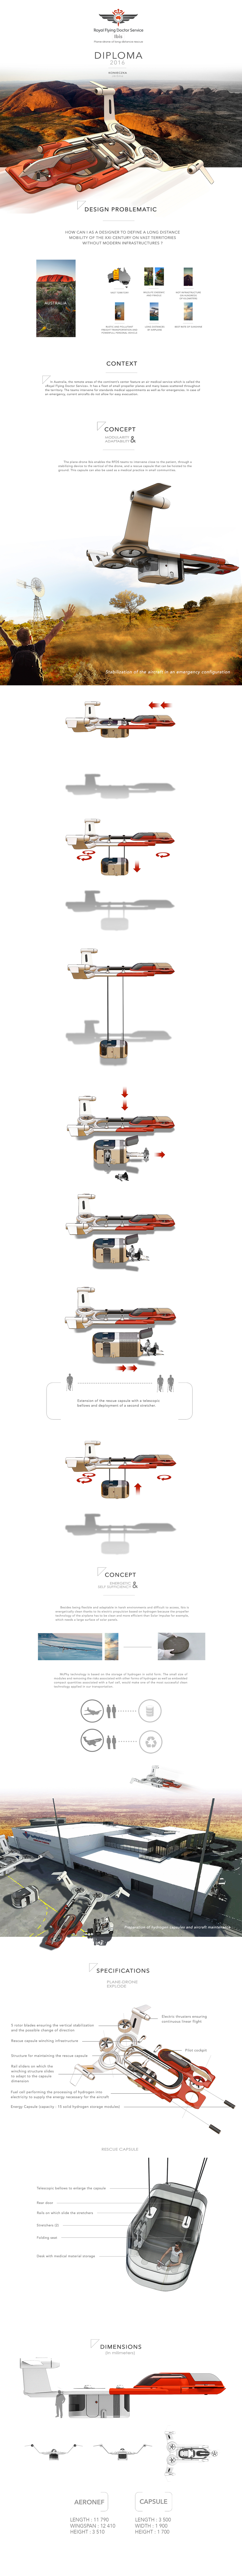 Diploma Project - Ibis Plane-drone on Behance